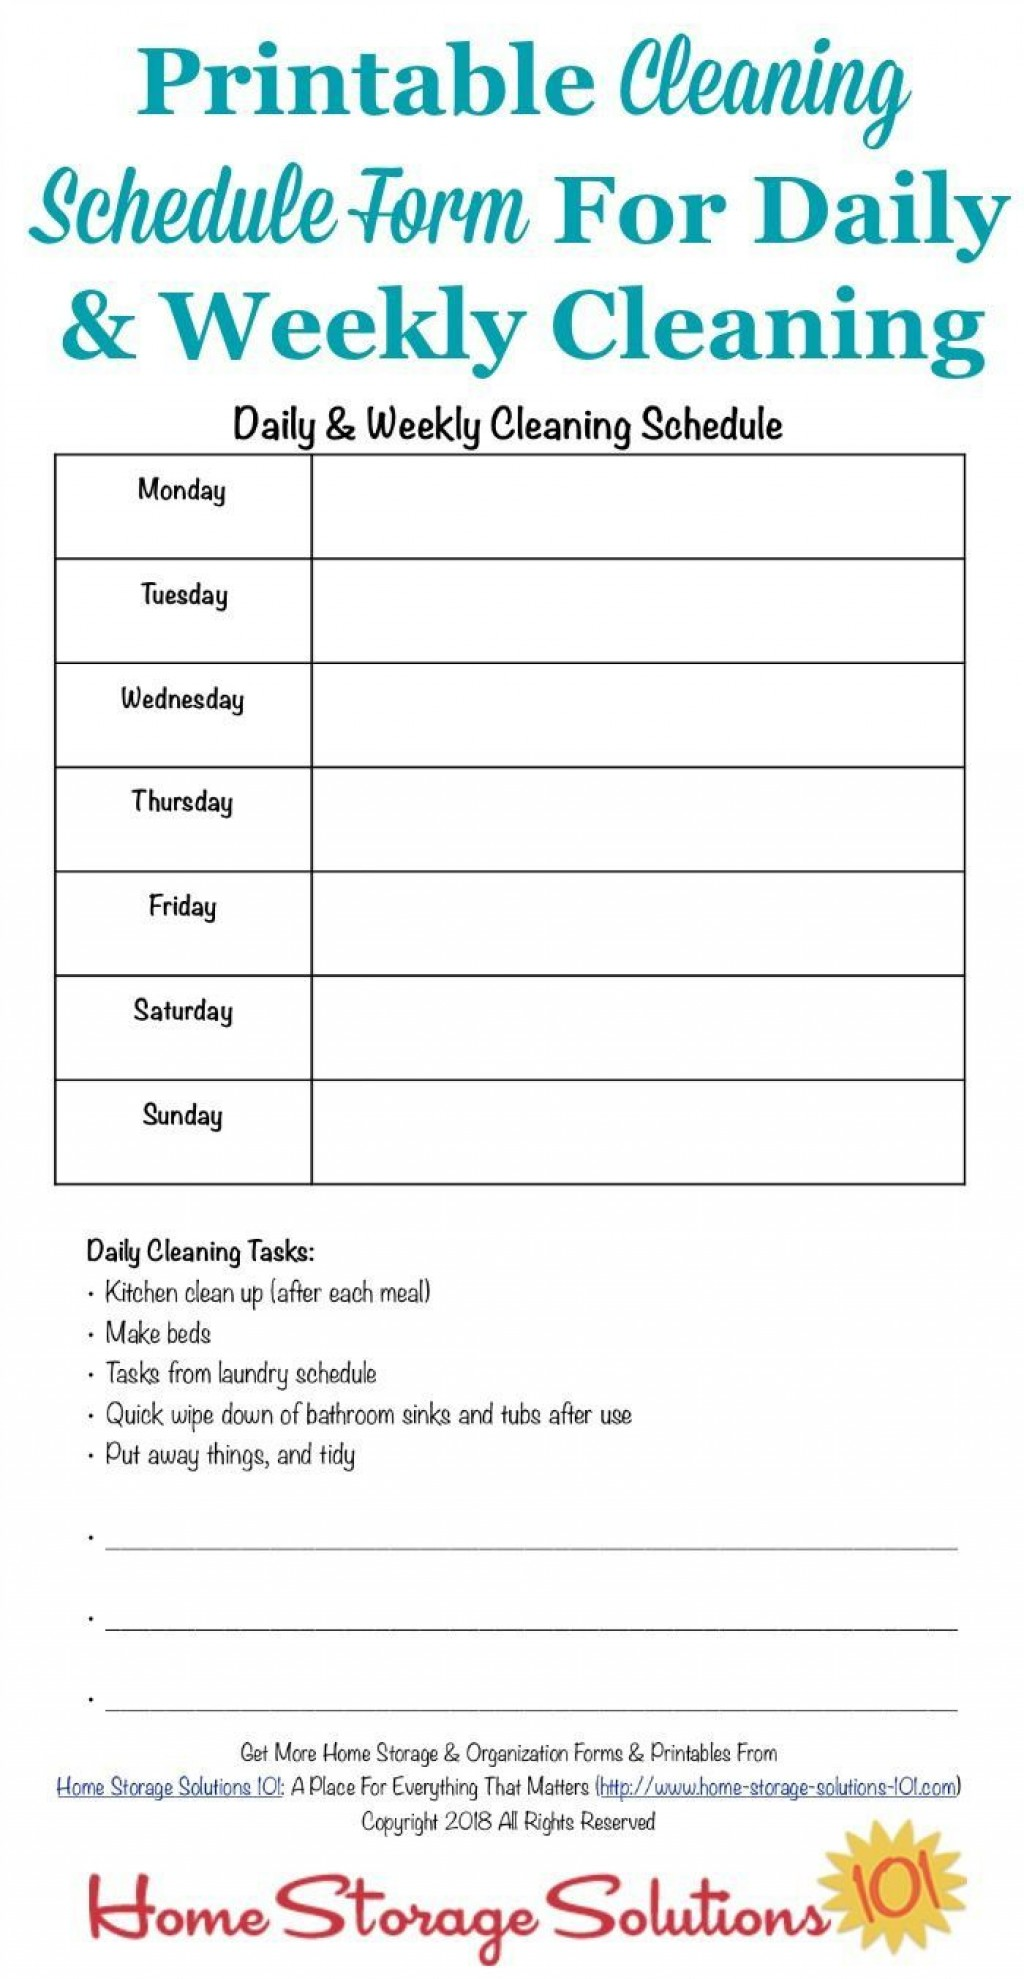 001 Rare Weekly Cleaning Schedule Form Highest Quality  Template Restaurant ExcelLarge